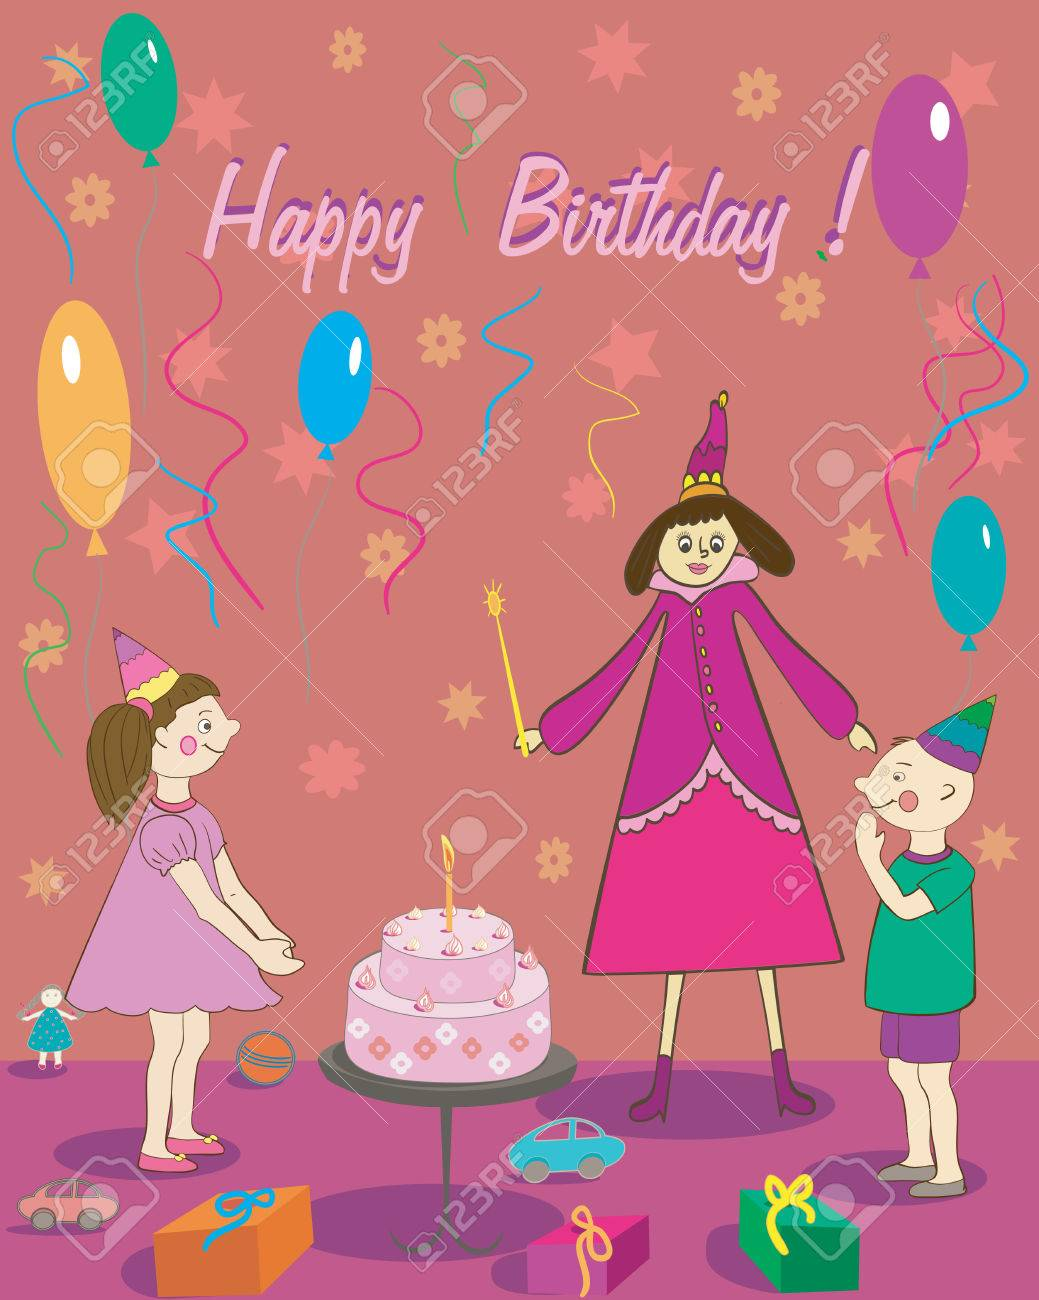 Happy Birthday Gift Girl Boy Cake And Fairy Illustration Stock Vector